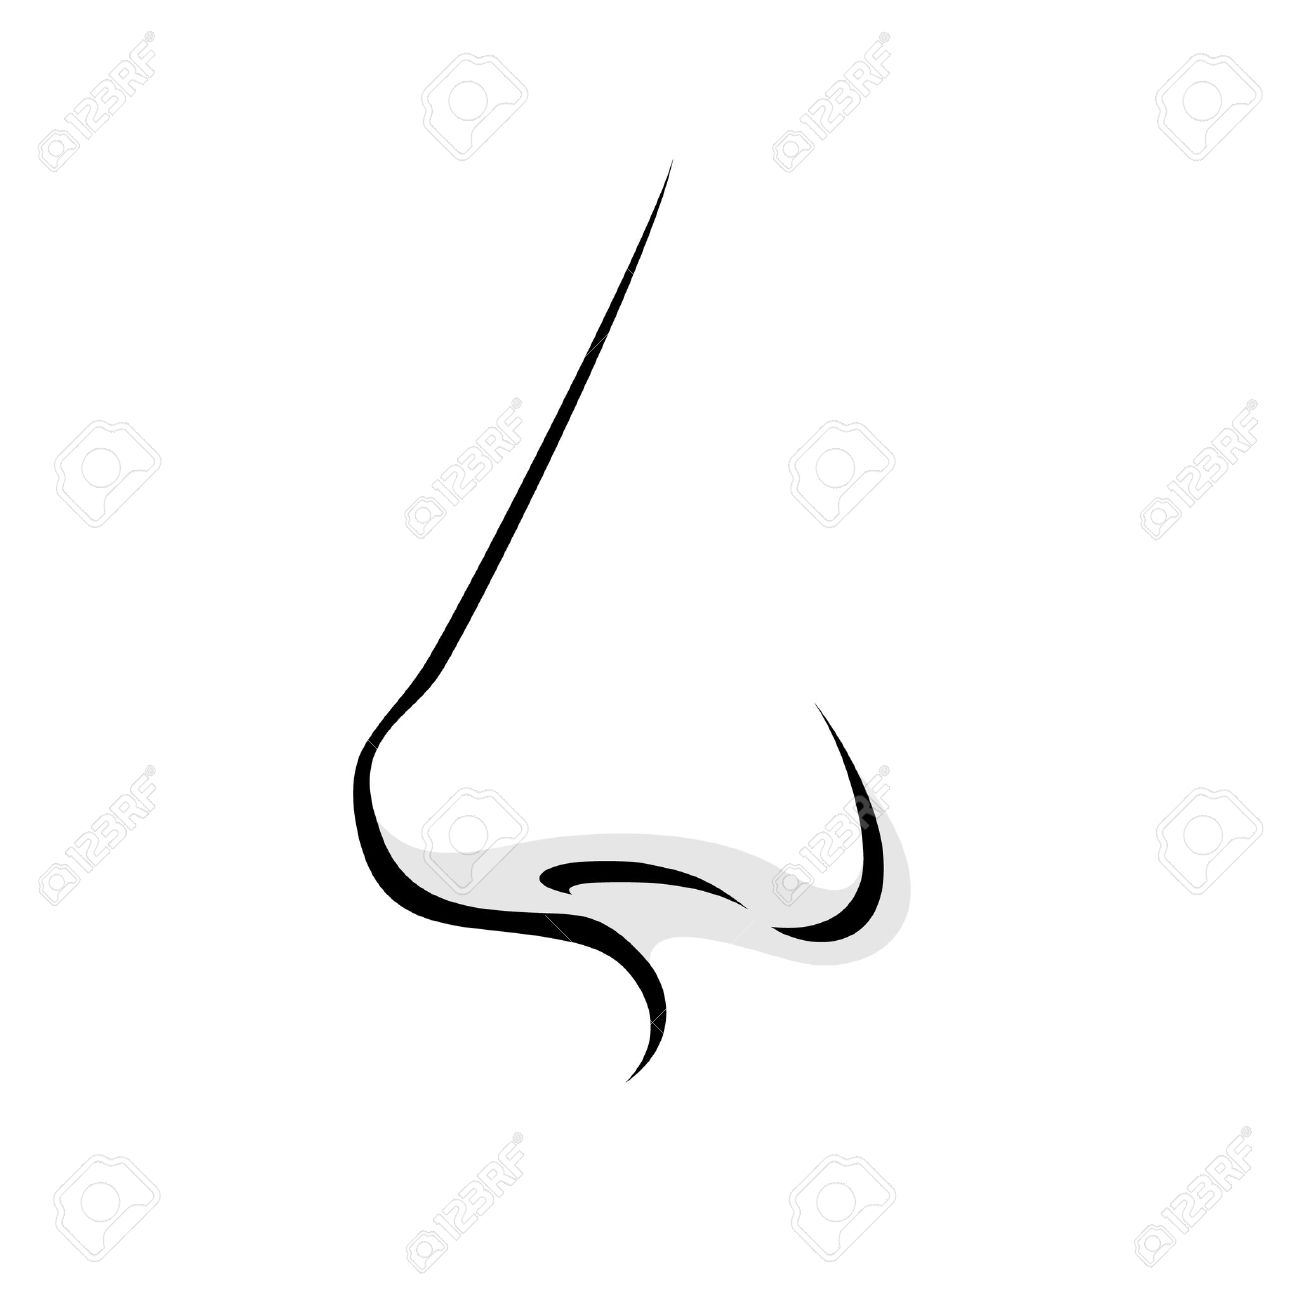 Human nose clipart black and white 7 » Clipart Station